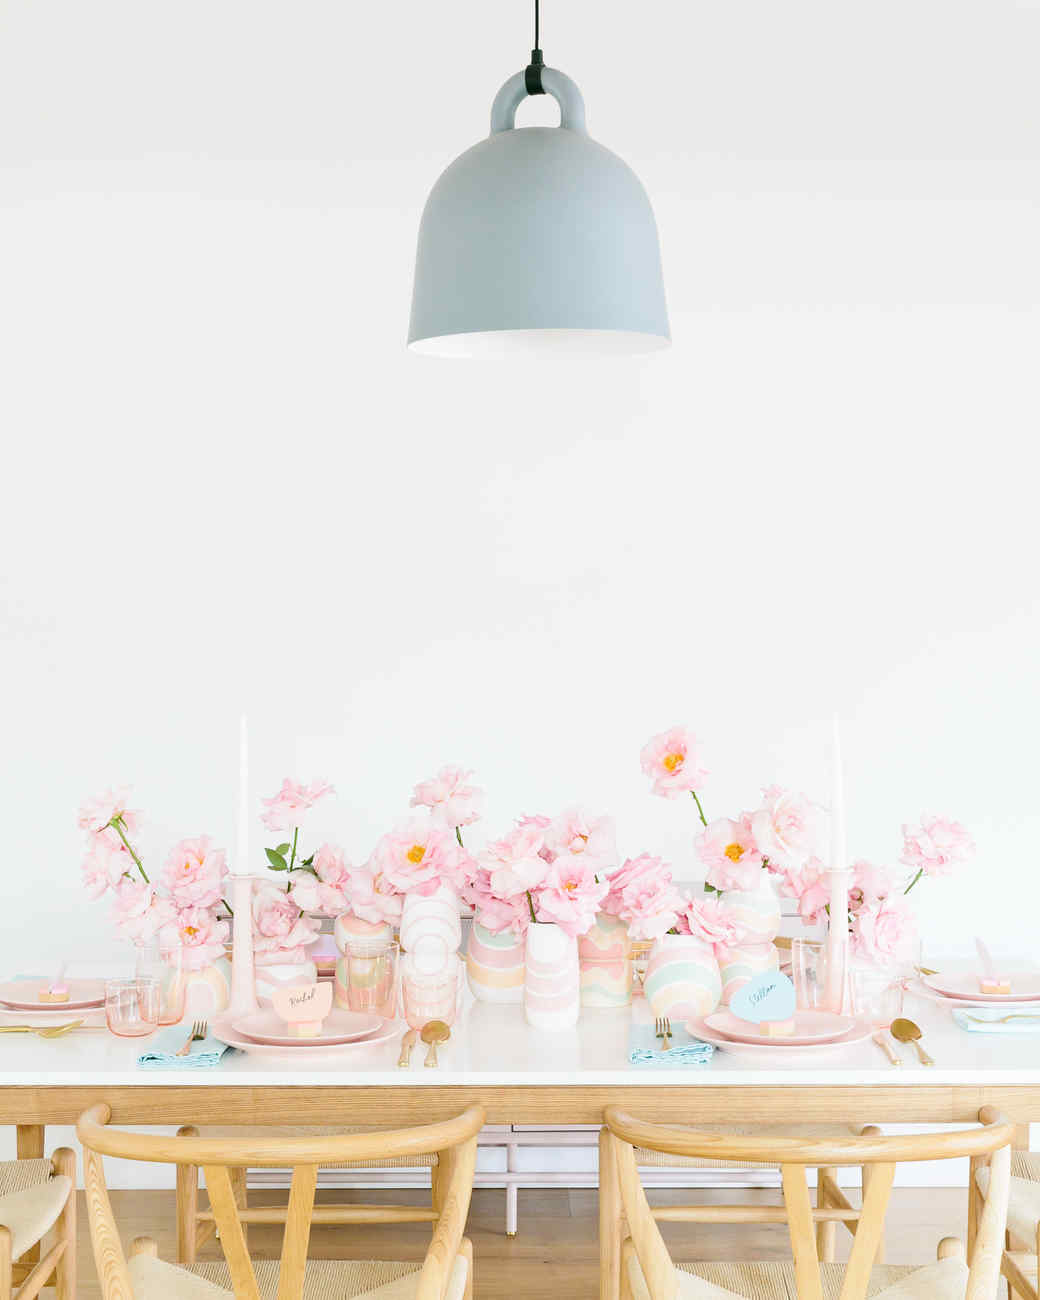 easter table decorations with blue overhead light